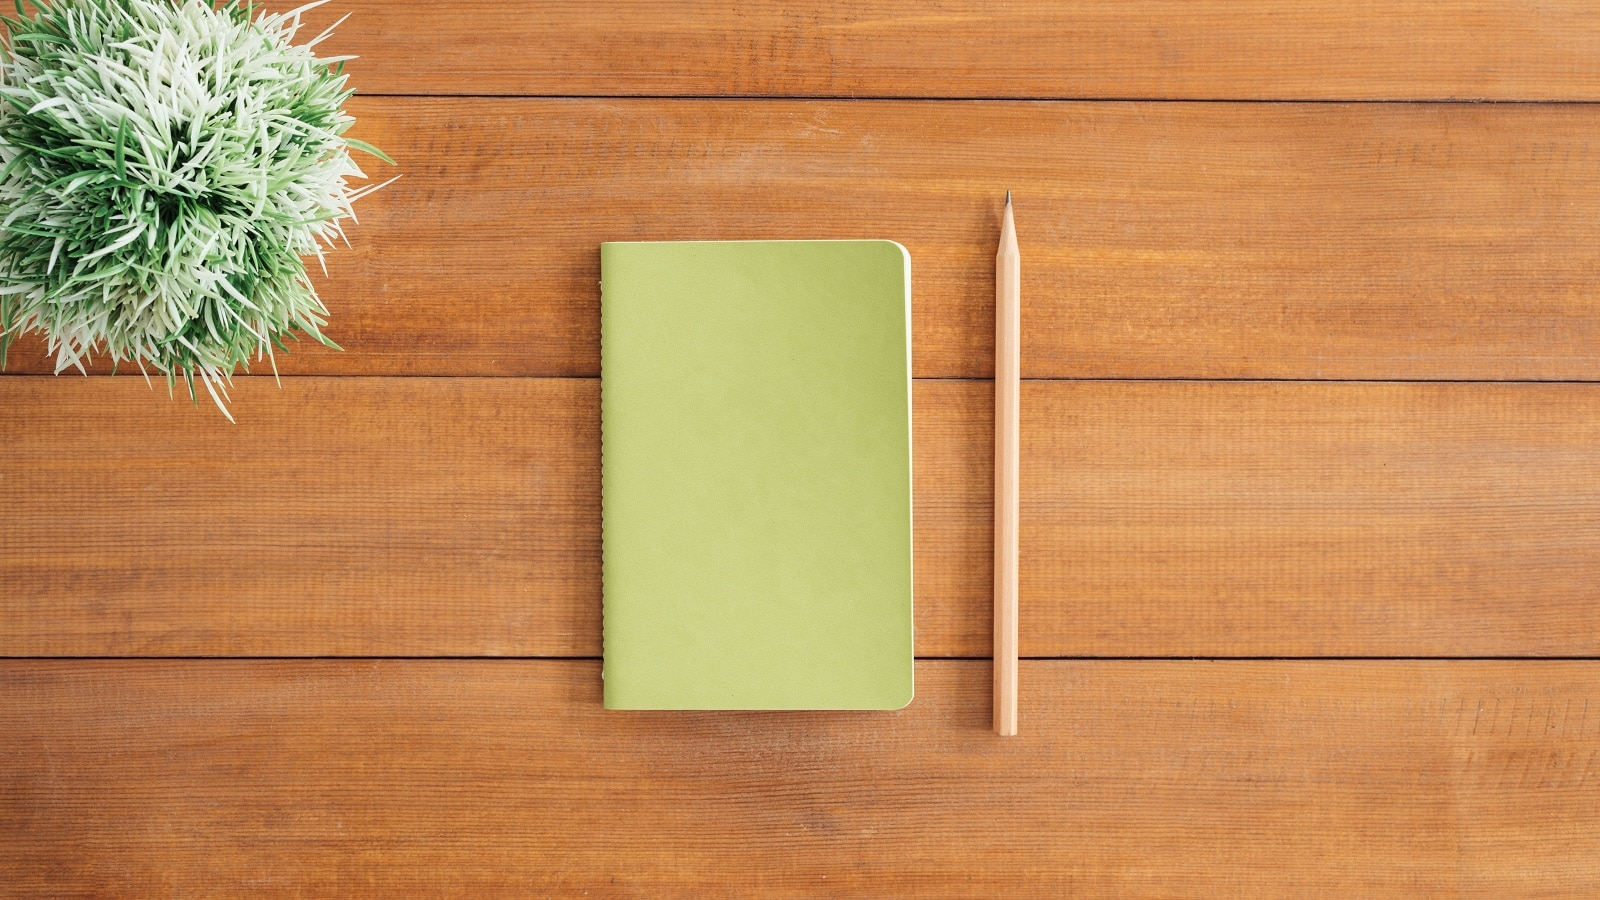 Green notebook on wooden table with plant and tan pencil besides